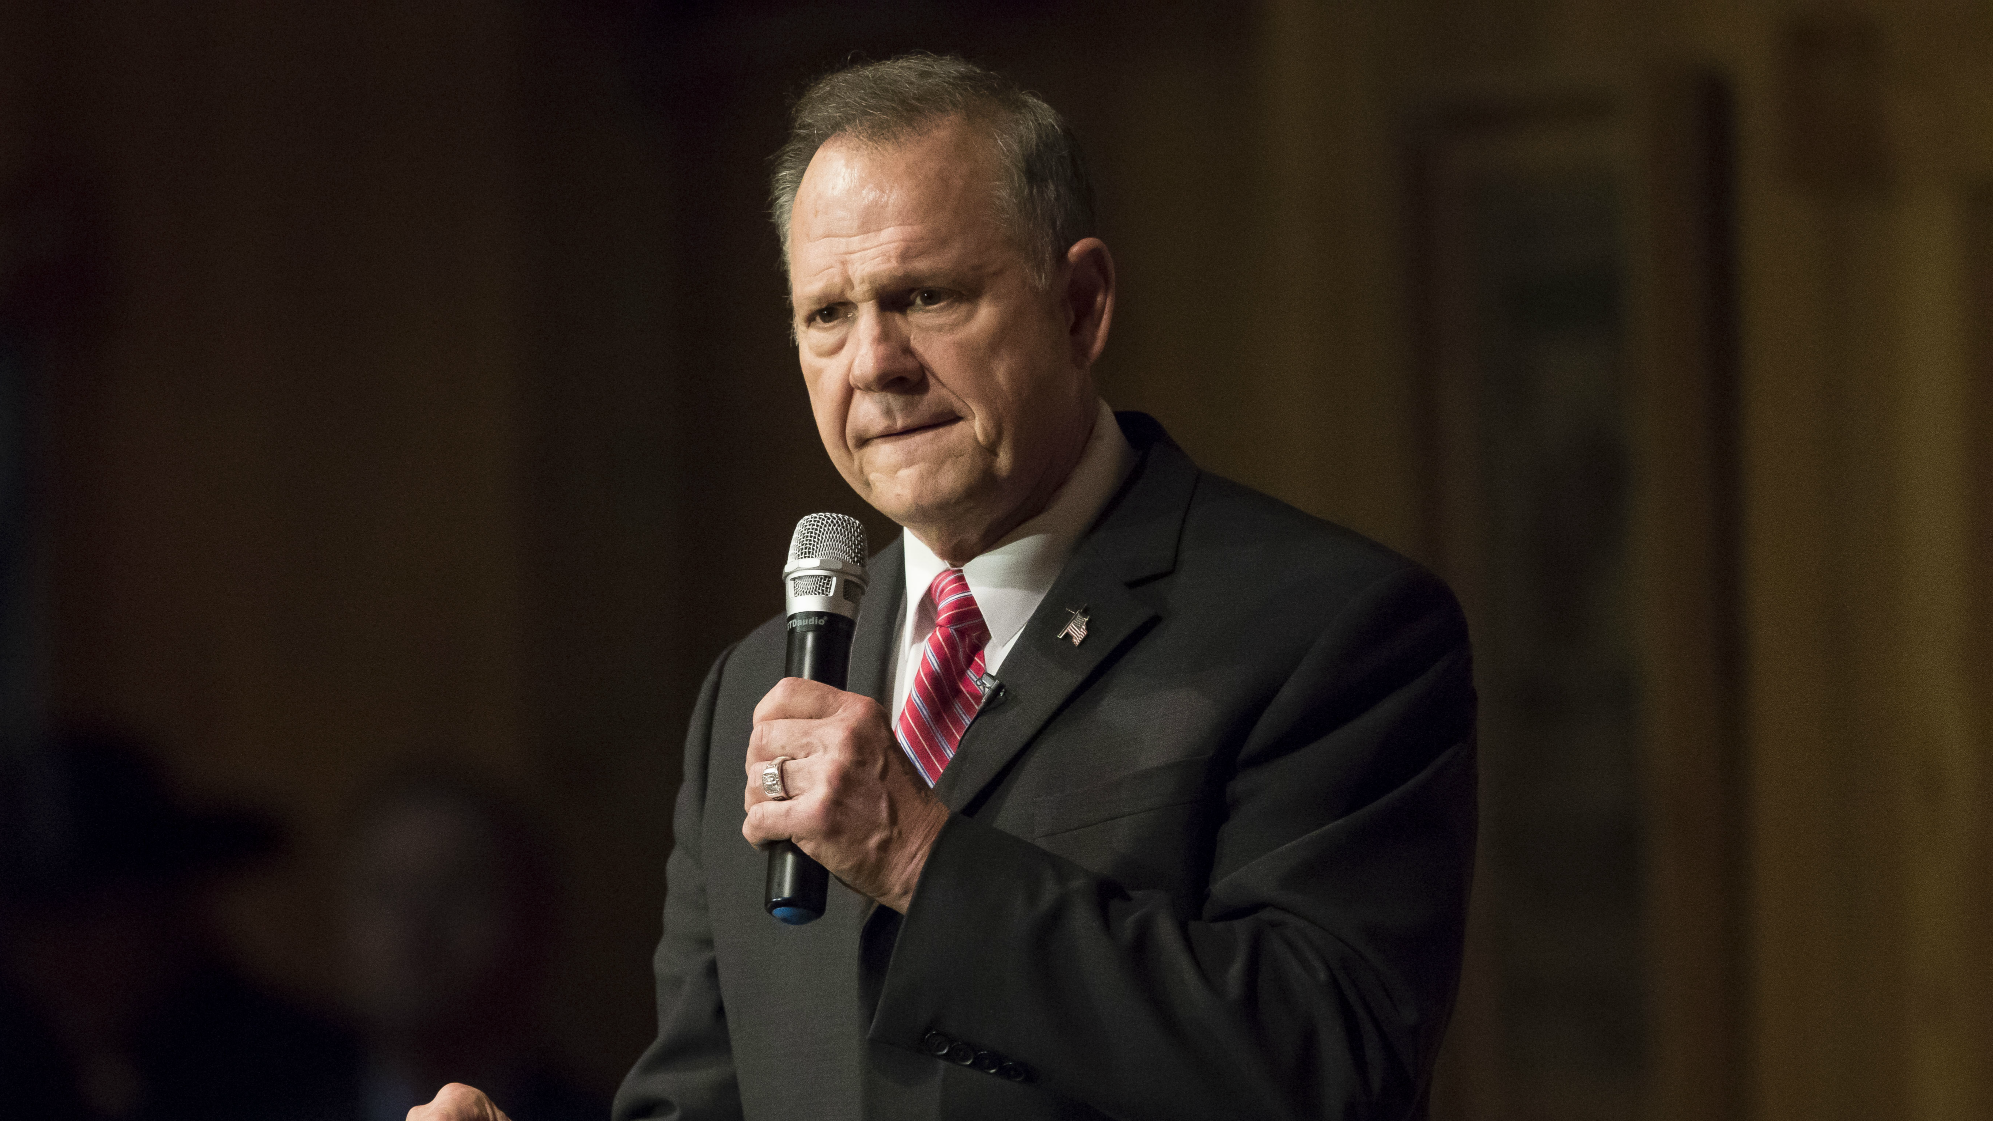 Spokesman: Moore 'Probably' Still Thinks Homosexuality Should Be Illegal